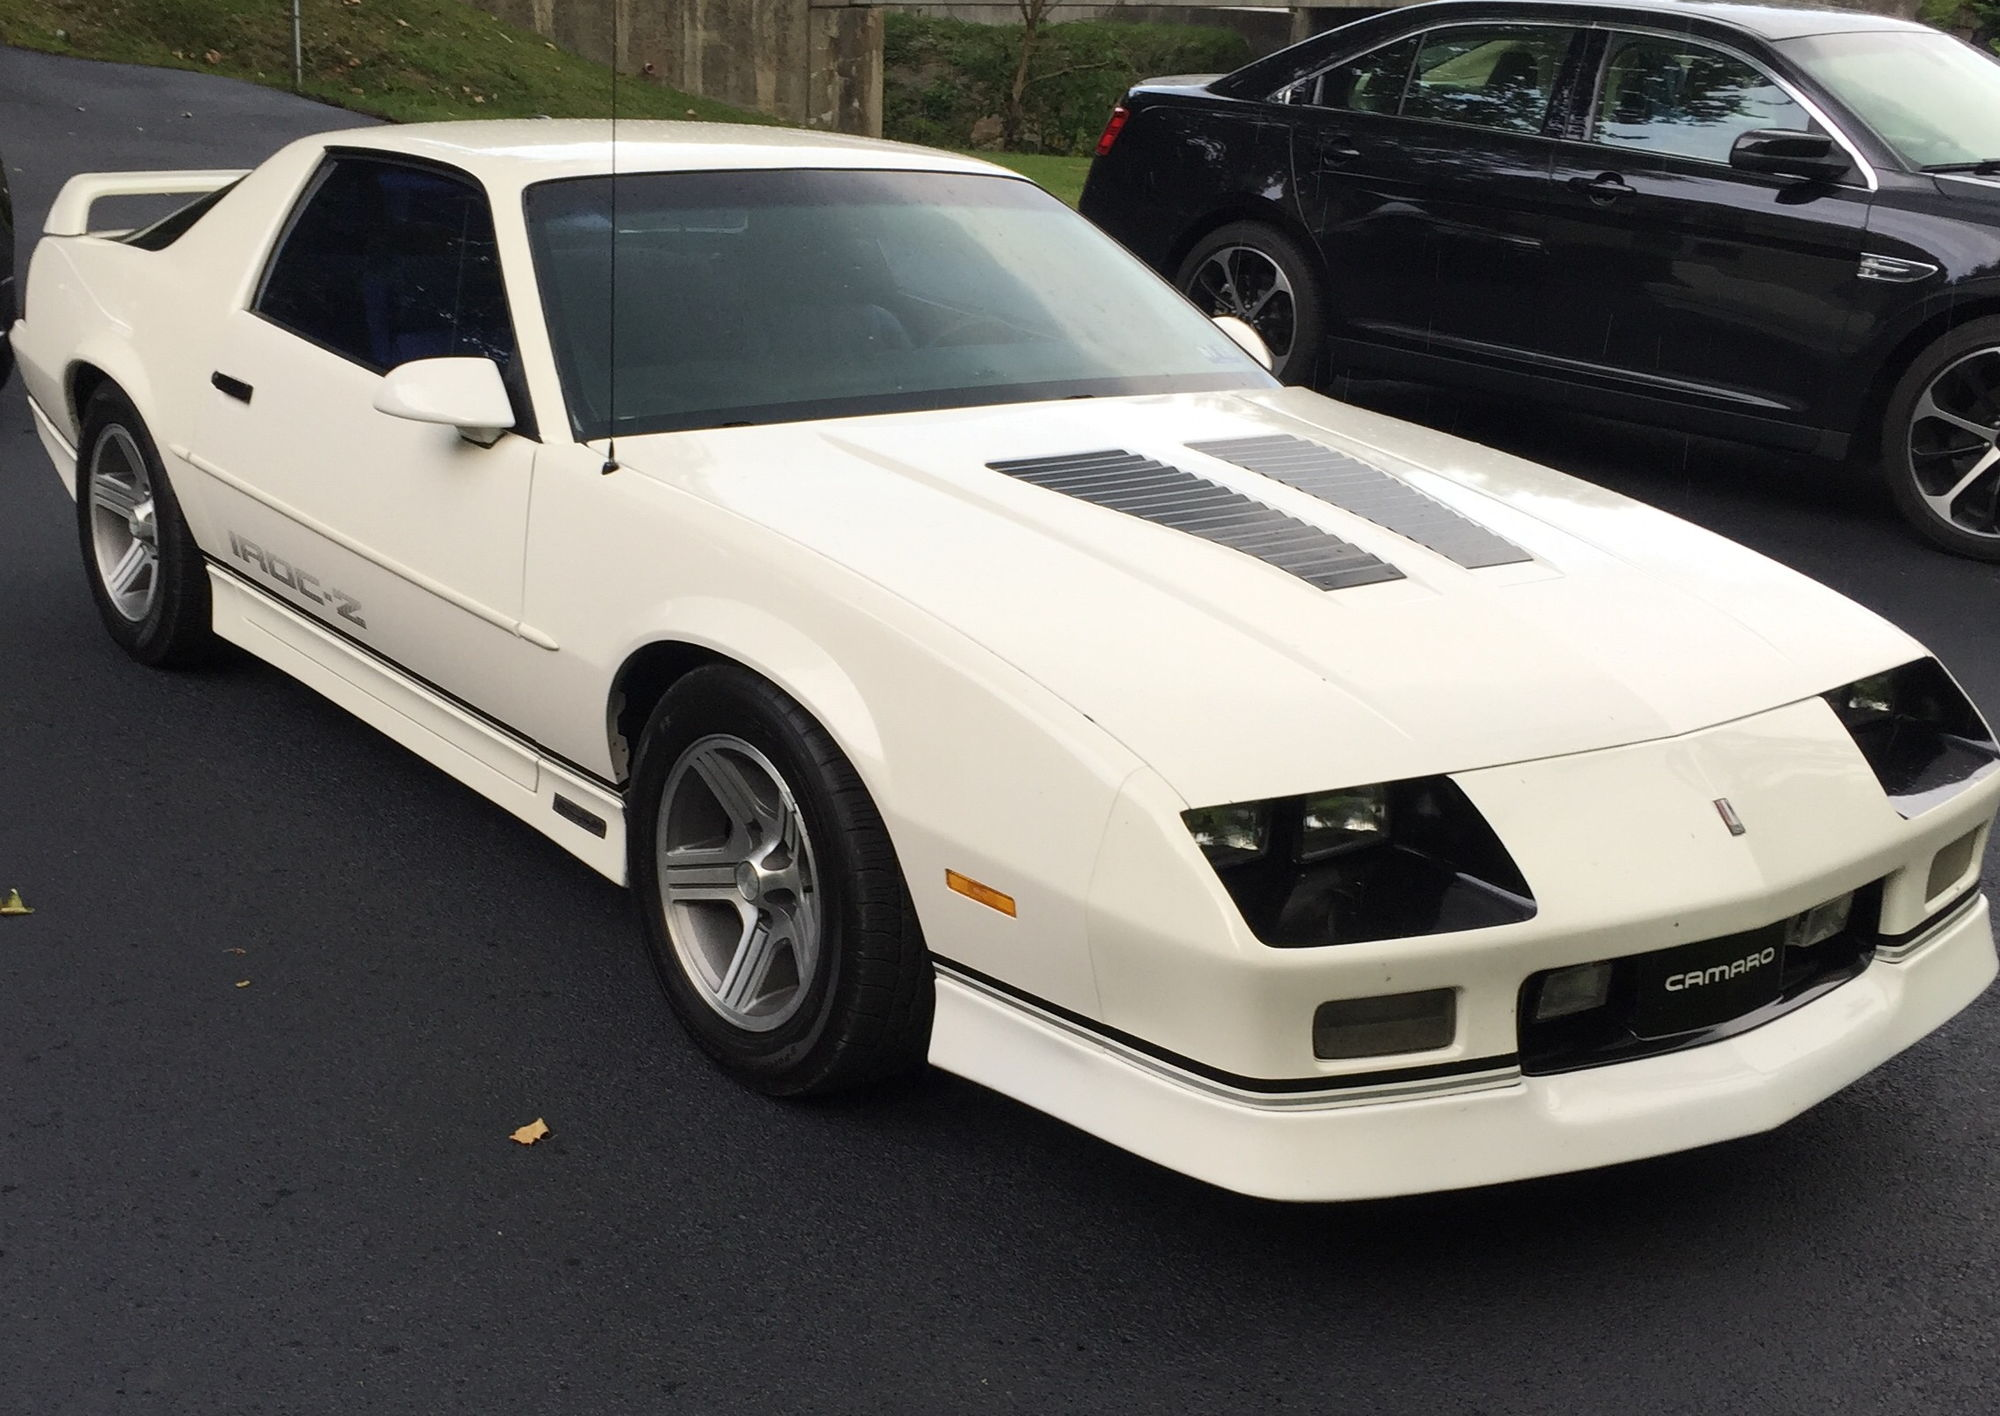 1989 Camaro Iroc Sold Third Generation F Body Message